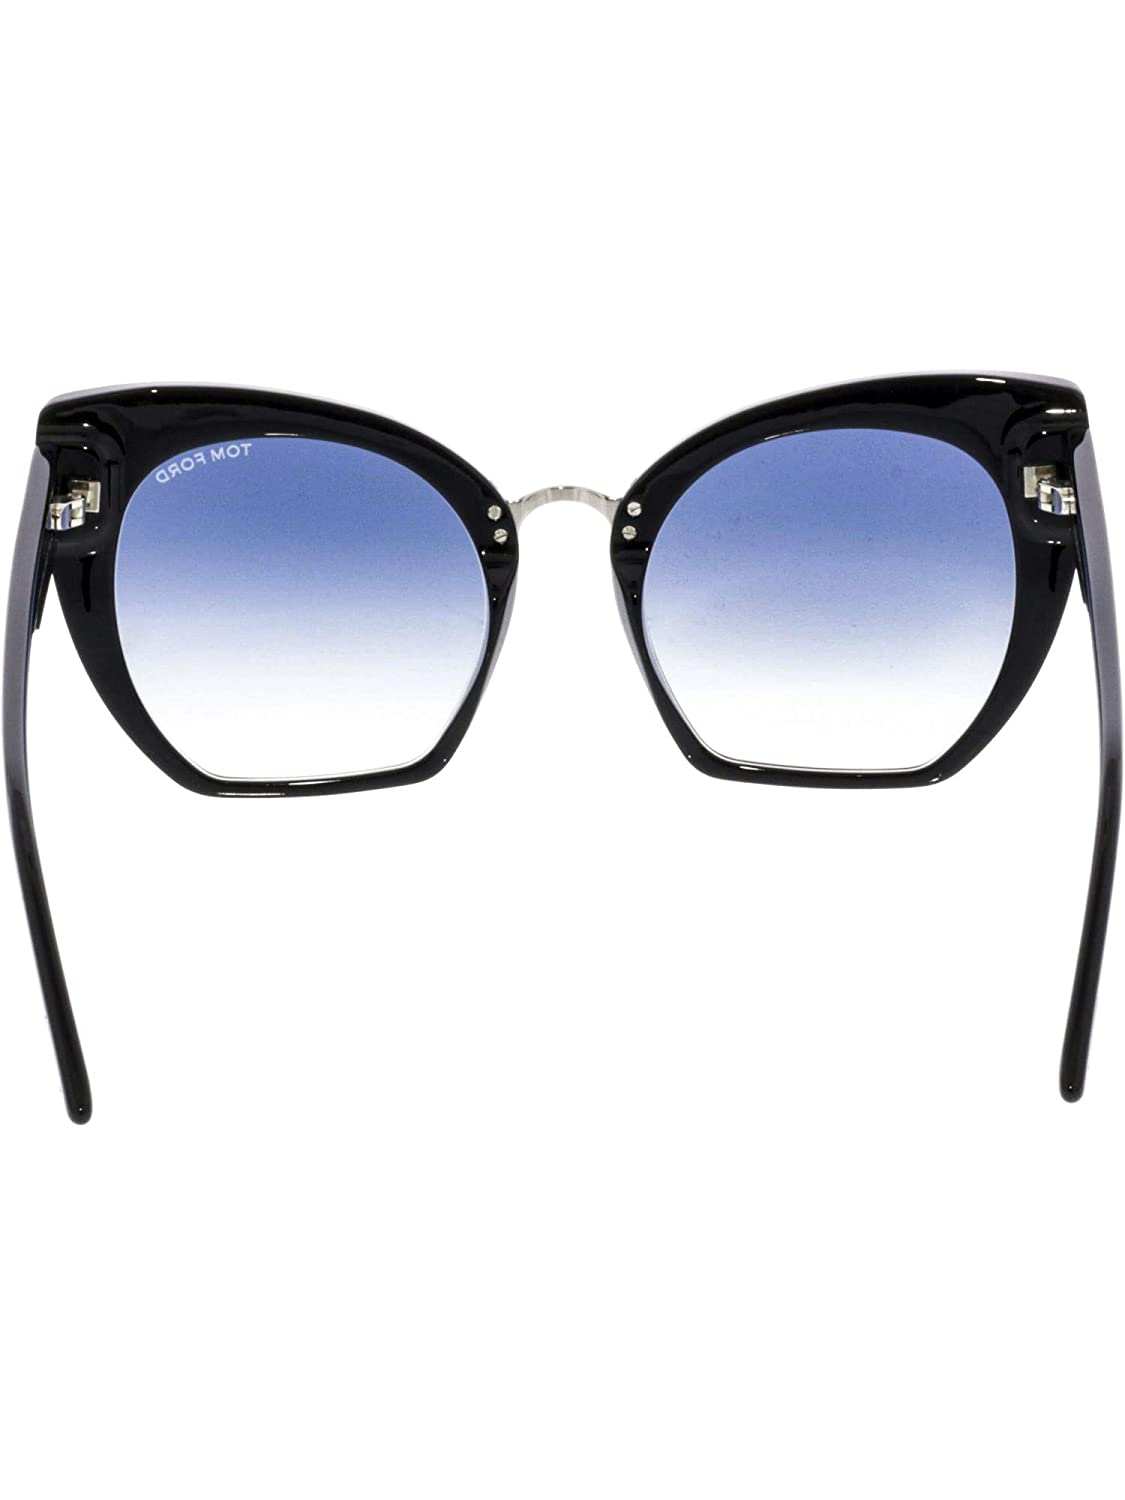 5c4a8d1113c90 Sunglasses Tom Ford FT 0553 Samantha- 02 01W shiny black gradient blue at  Amazon Men s Clothing store